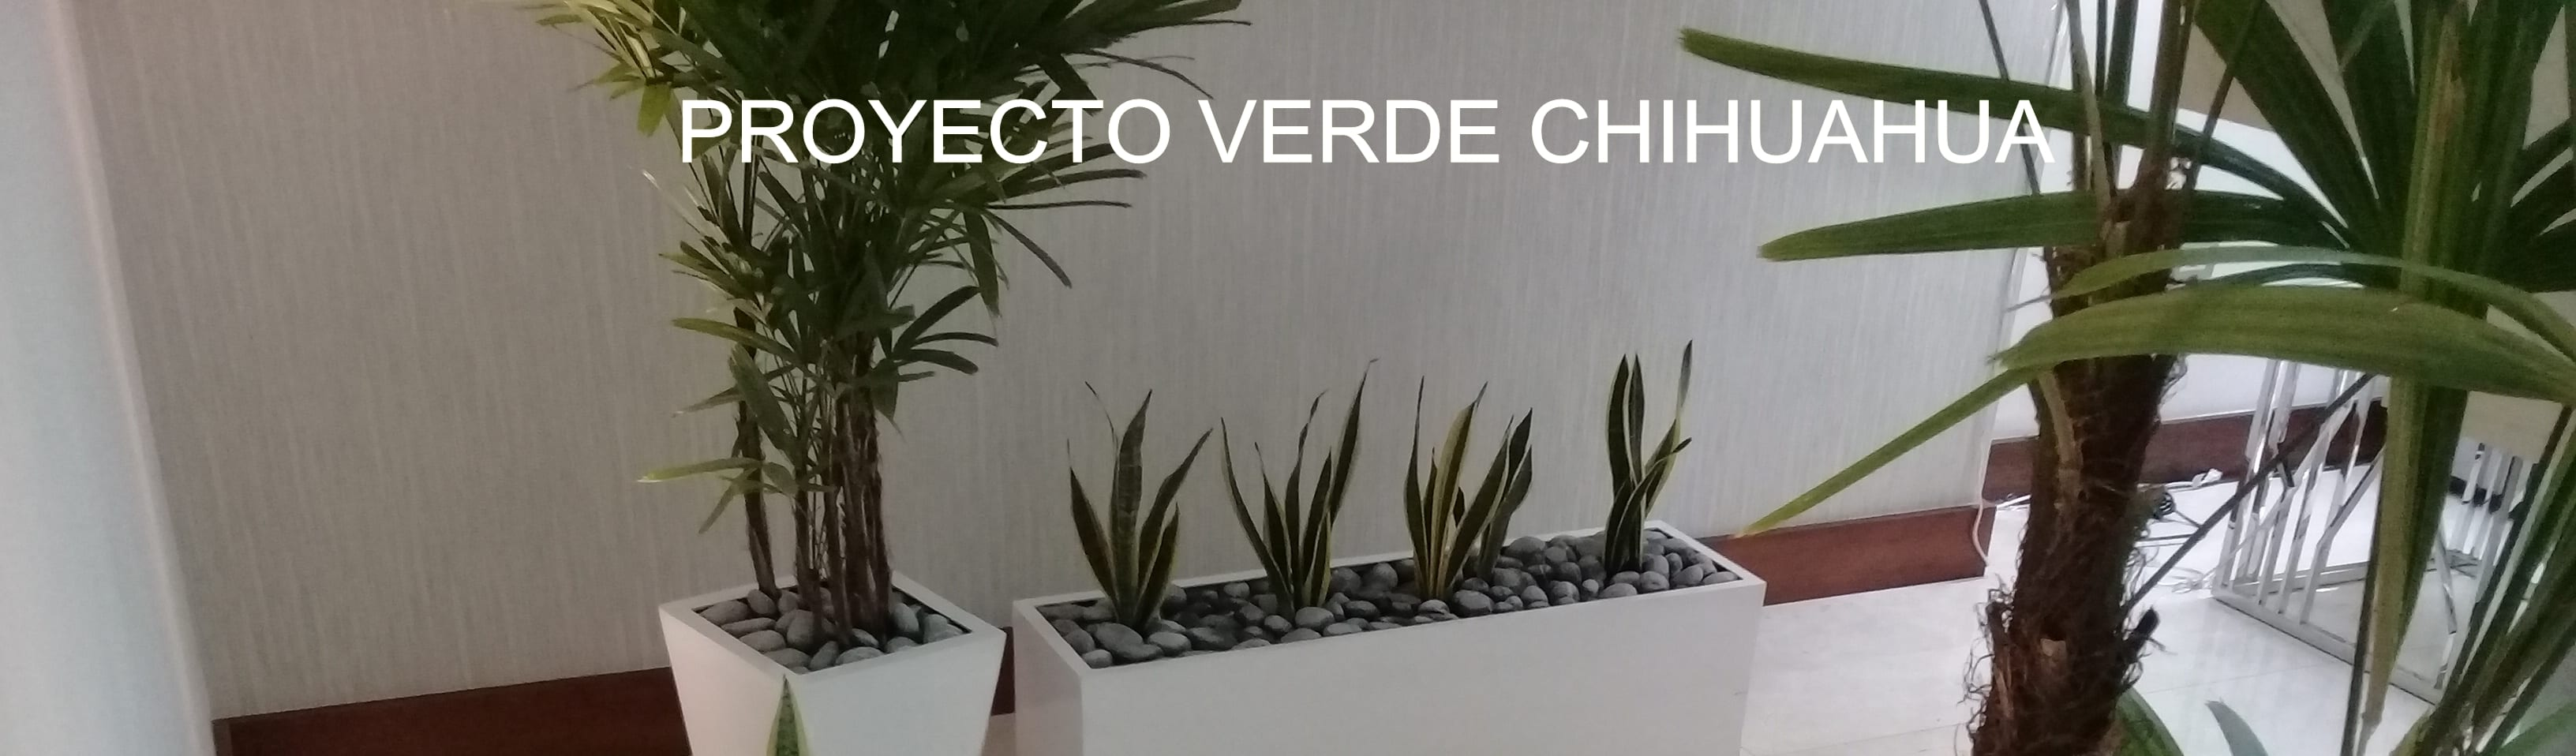 PROYECTO VERDE CHIHUAHUA